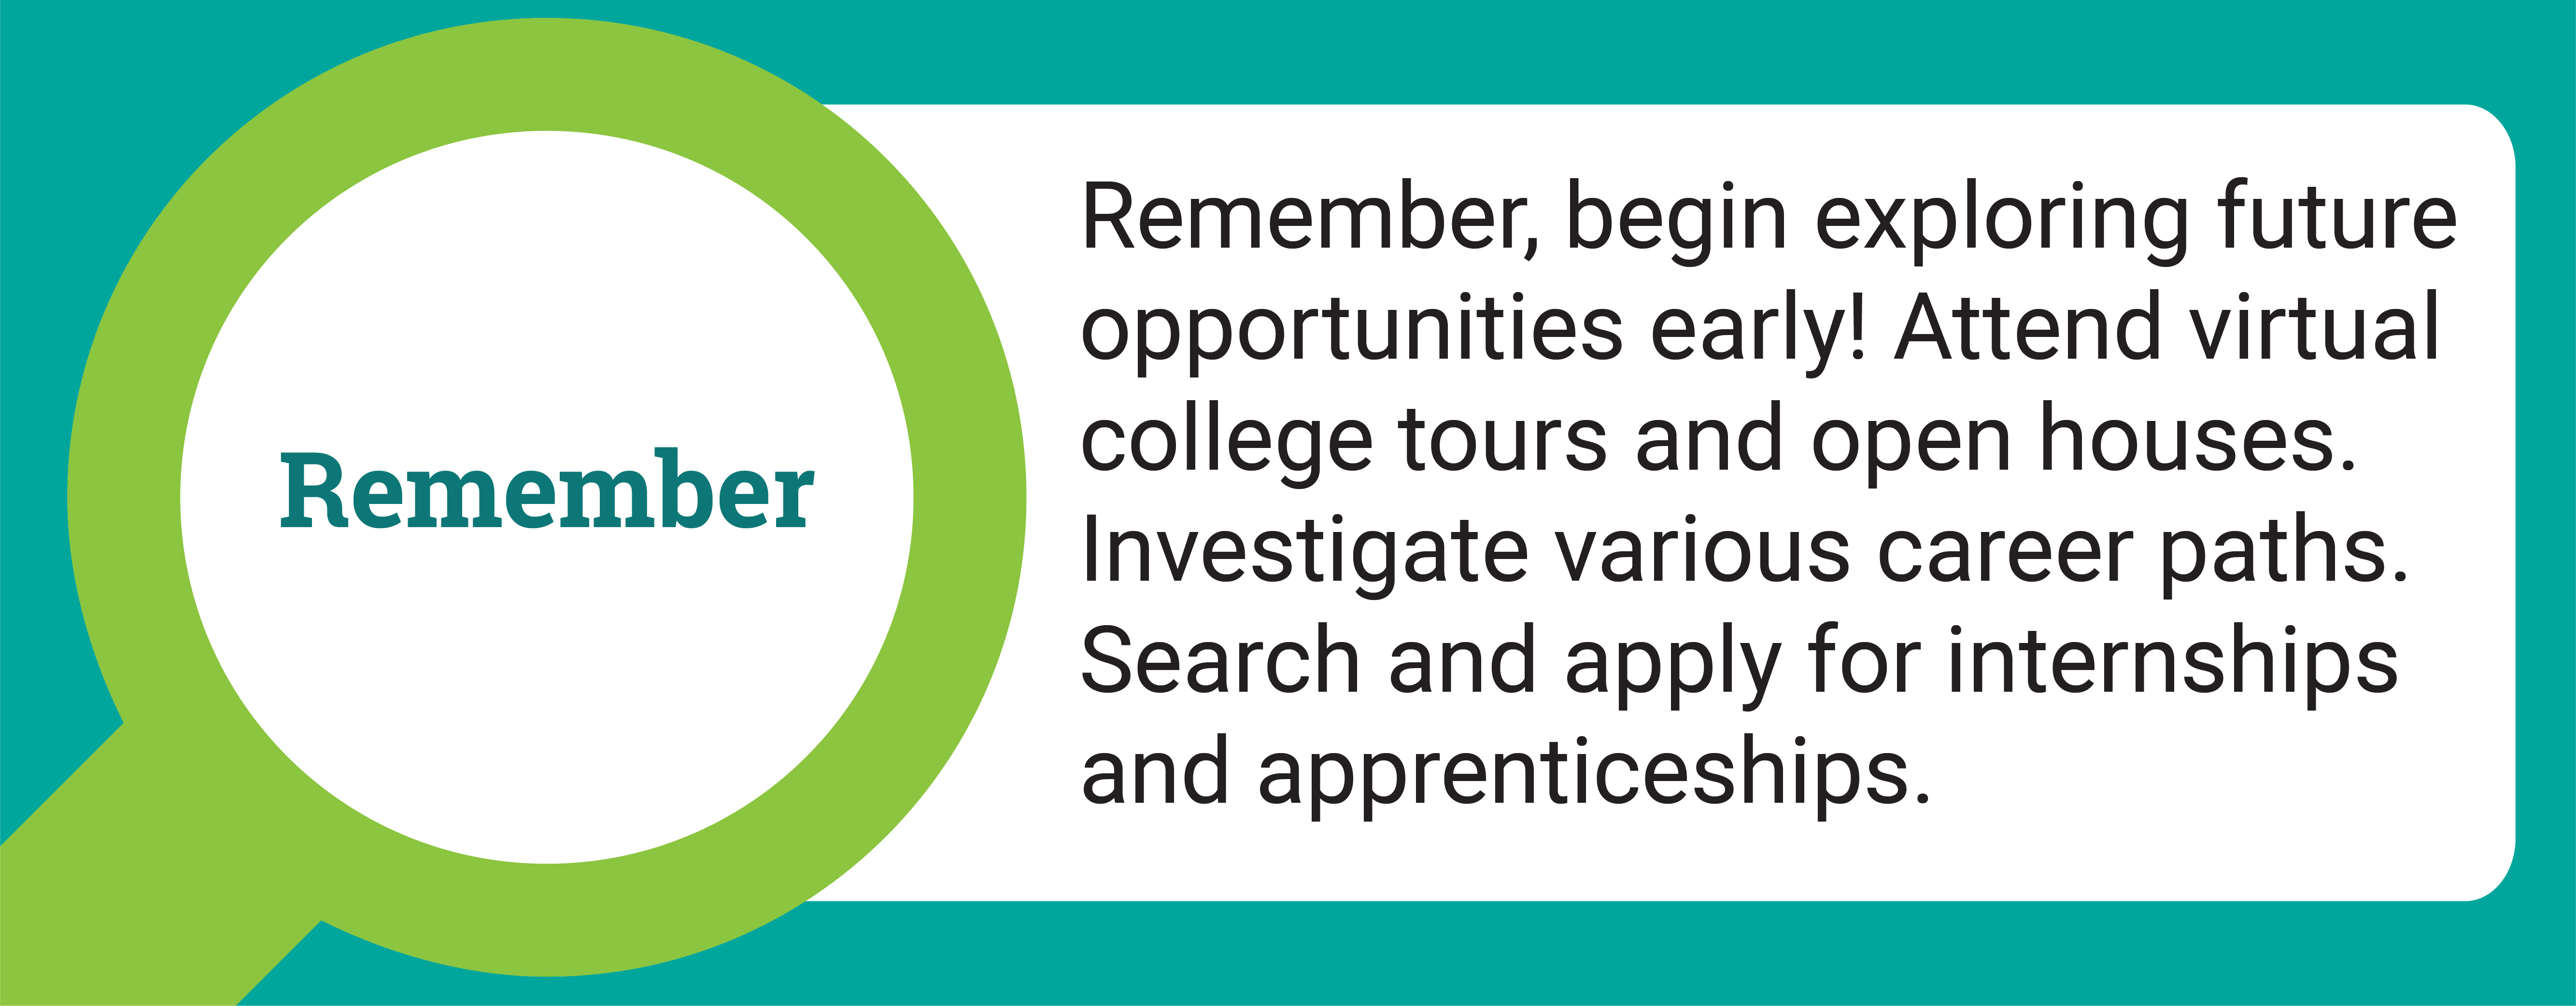 Remember, begin exploring future opportunities early! Remember, begin exploring future opportunities early!Attend virtual college tours and open houses. Investigate various career paths. Search and apply for internships and apprenticeships.